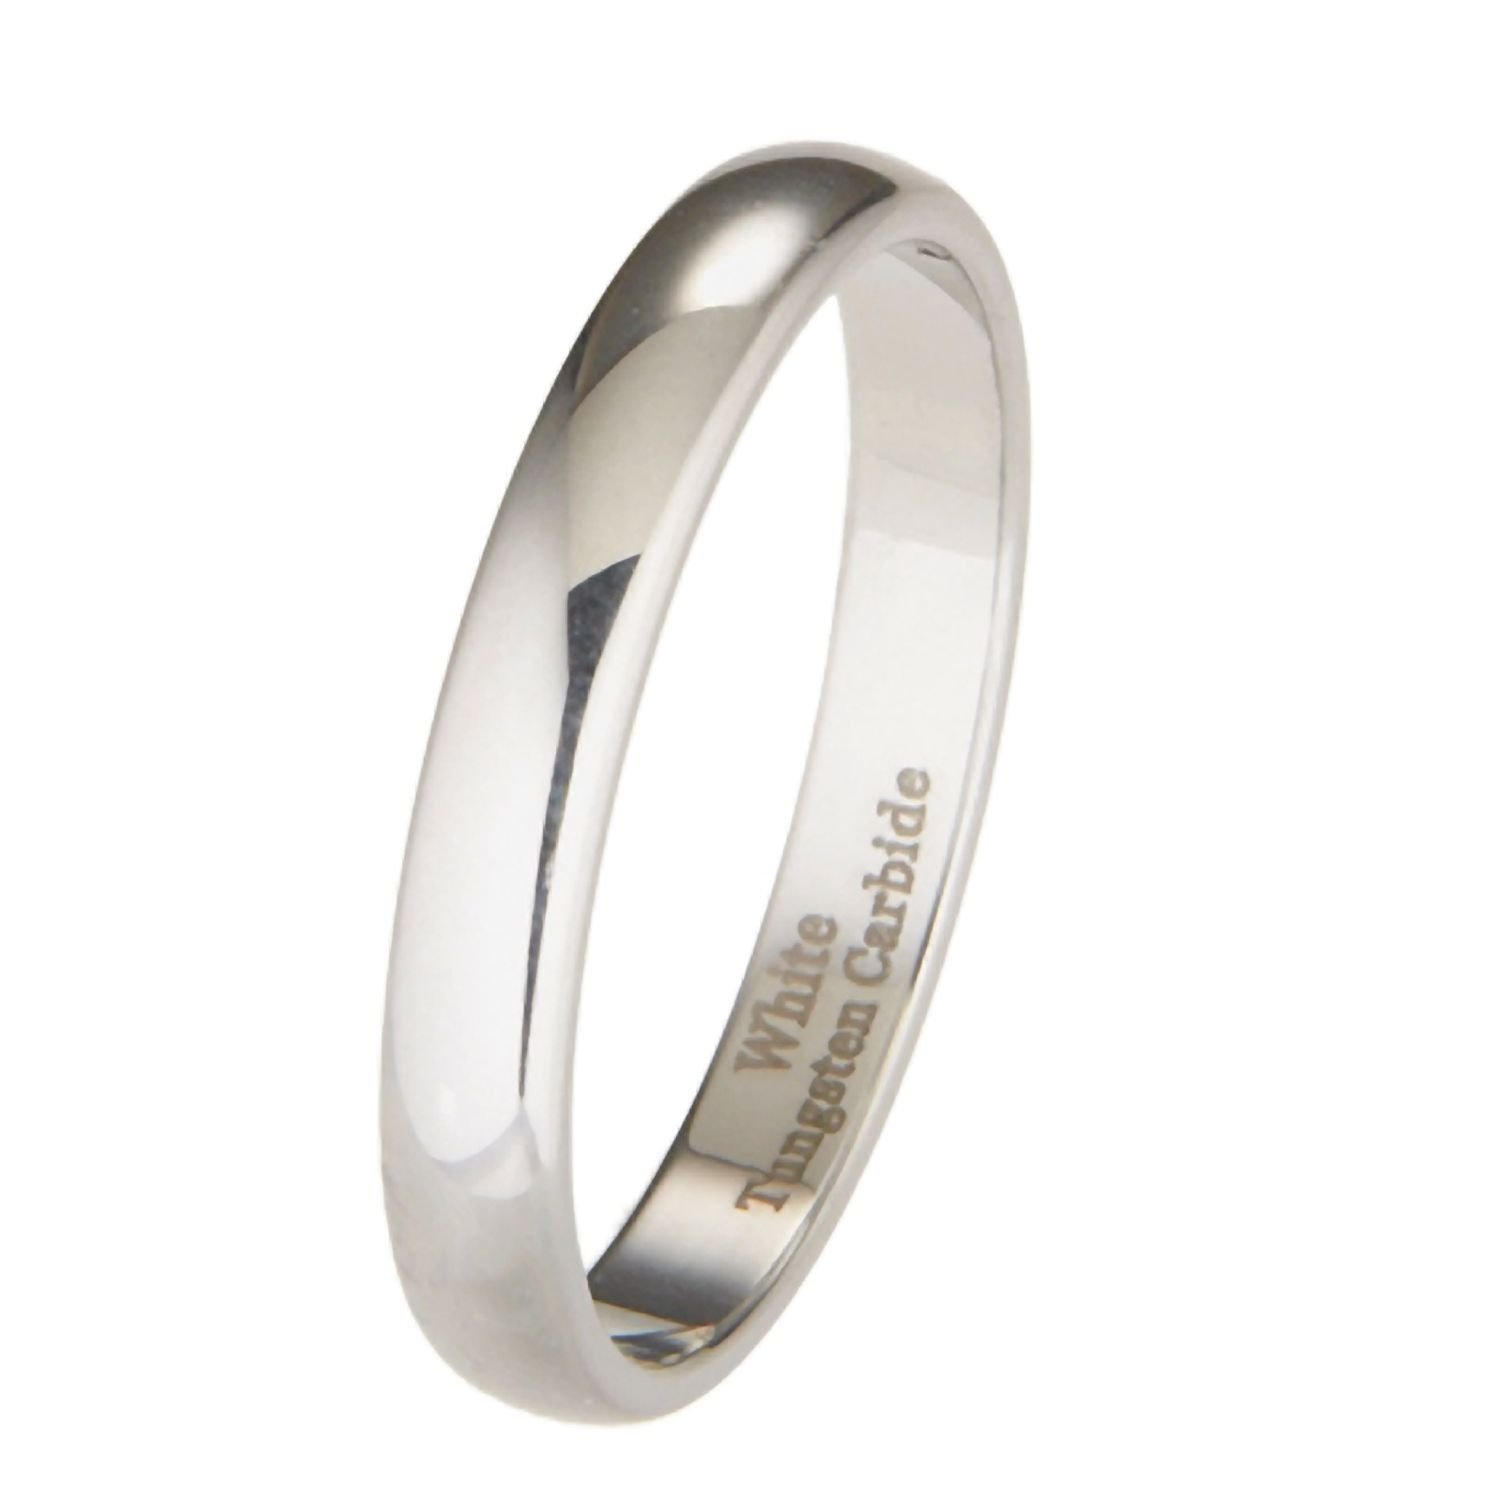 MJ Metals Jewelry Custom Engraved 3mm White Tungsten Carbide Polished Classic Wedding Ring Sz 6